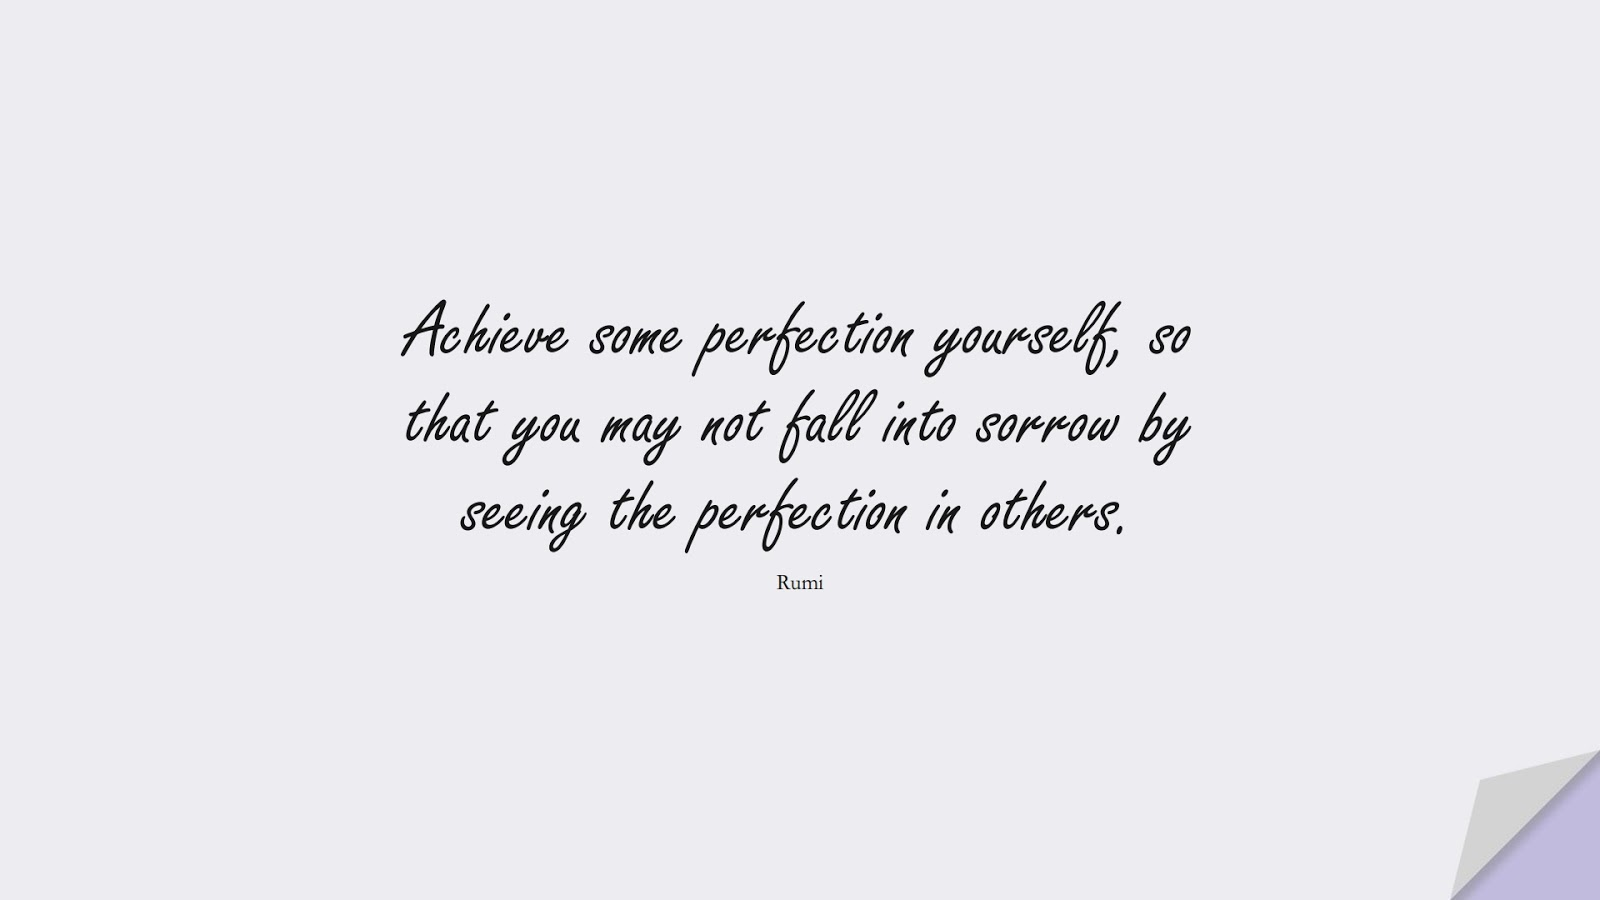 Achieve some perfection yourself, so that you may not fall into sorrow by seeing the perfection in others. (Rumi);  #RumiQuotes